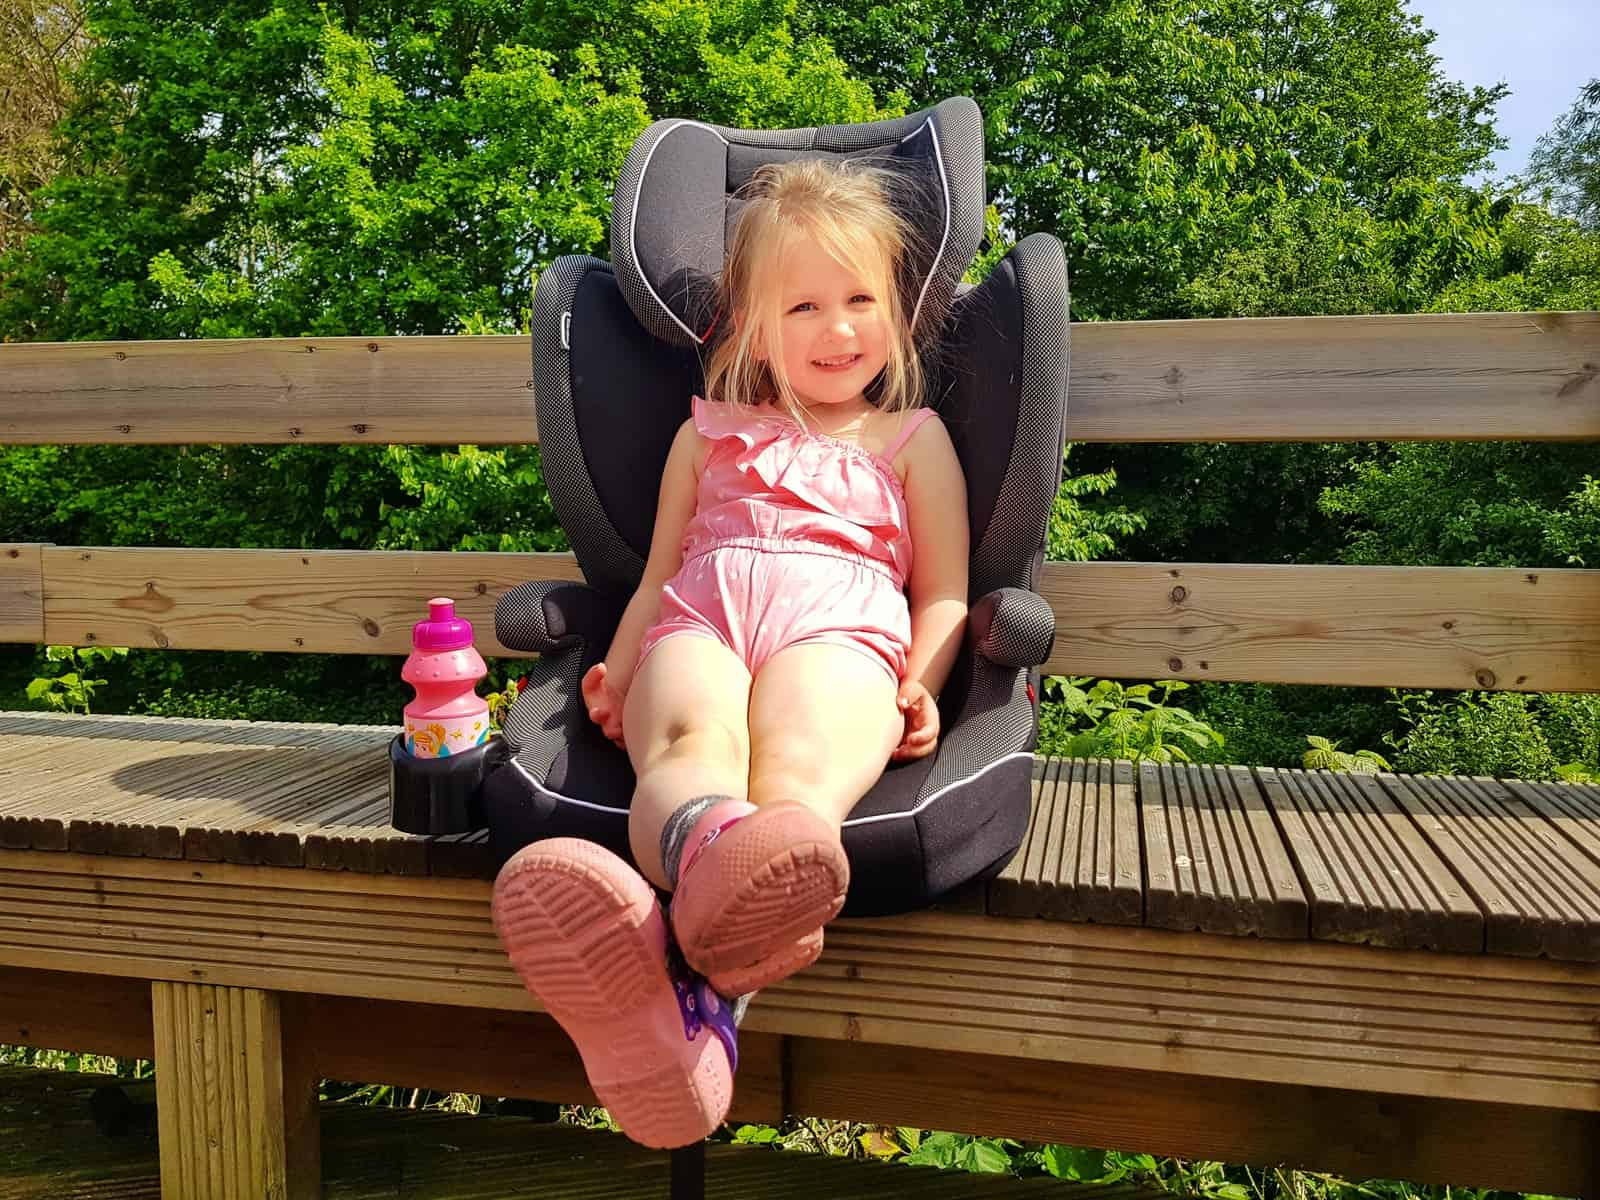 Little girl in pink outfit sat in car seat on a bench outside with drink in drink holder beside her